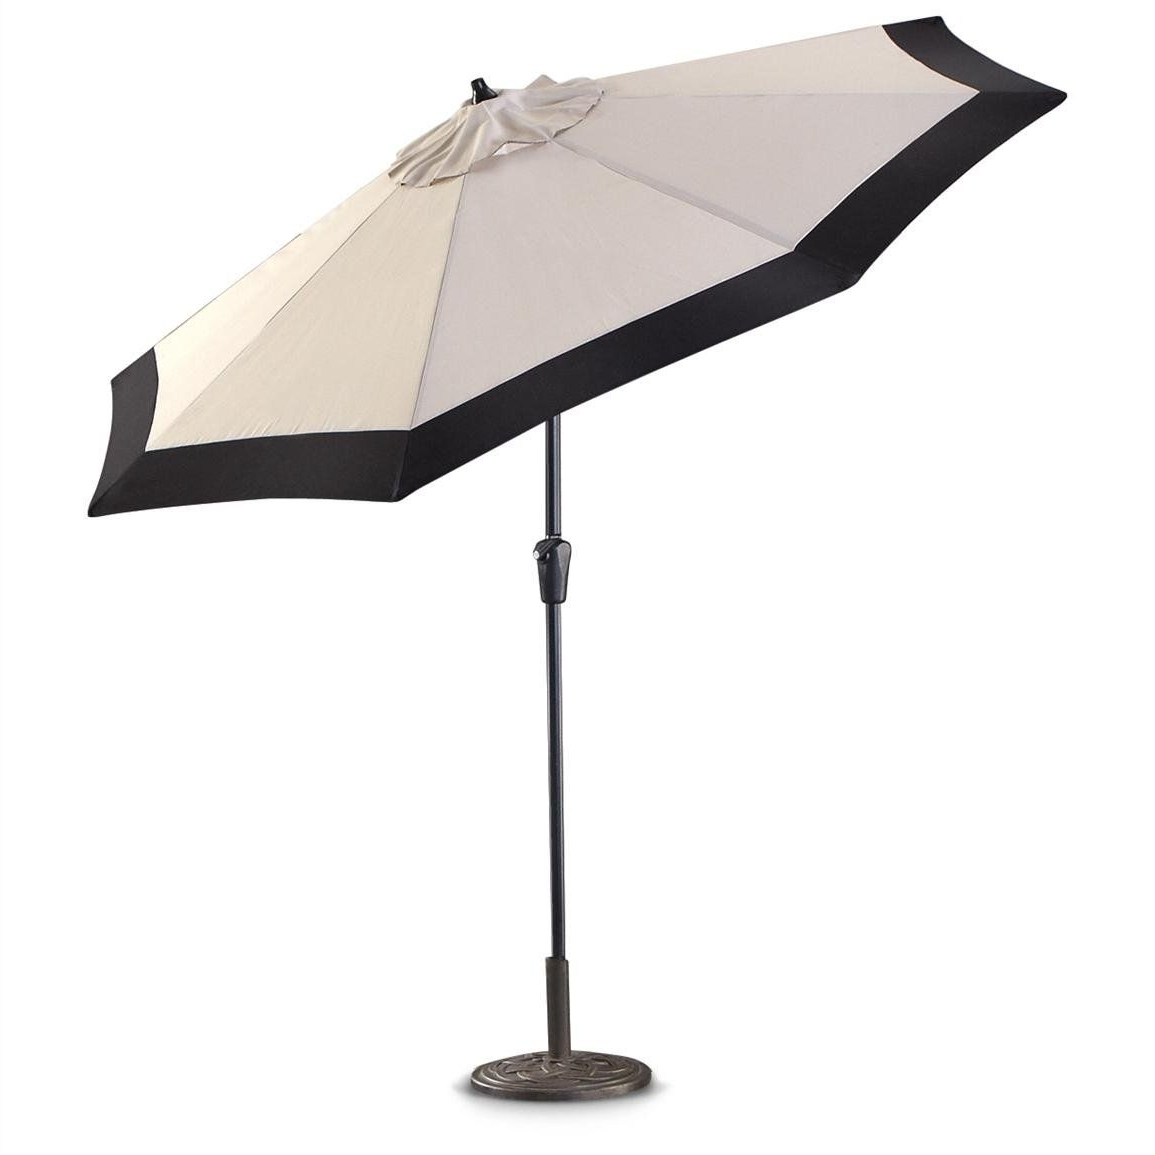 Deluxe Patio Umbrellas With Fashionable White Patio Umbrellas #5: Castlecreek 9 Two Tone Deluxe Market Patio (View 9 of 20)